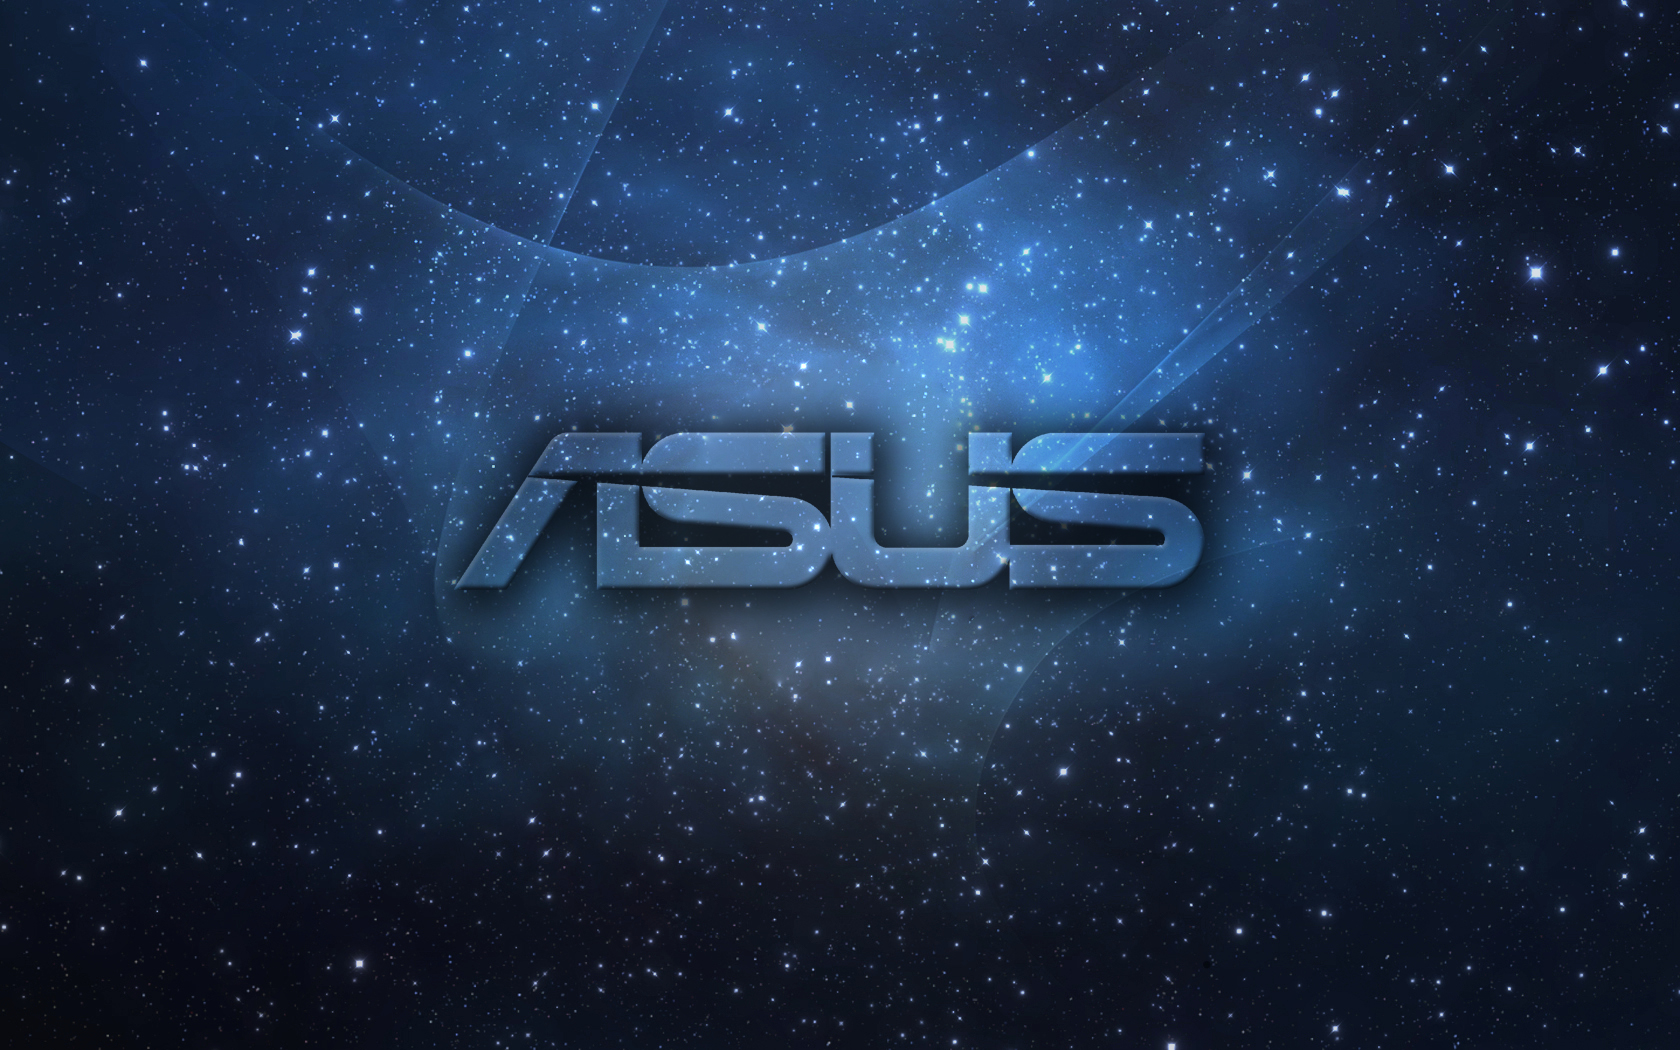 Asus Wallpaper Hd 1680x1050